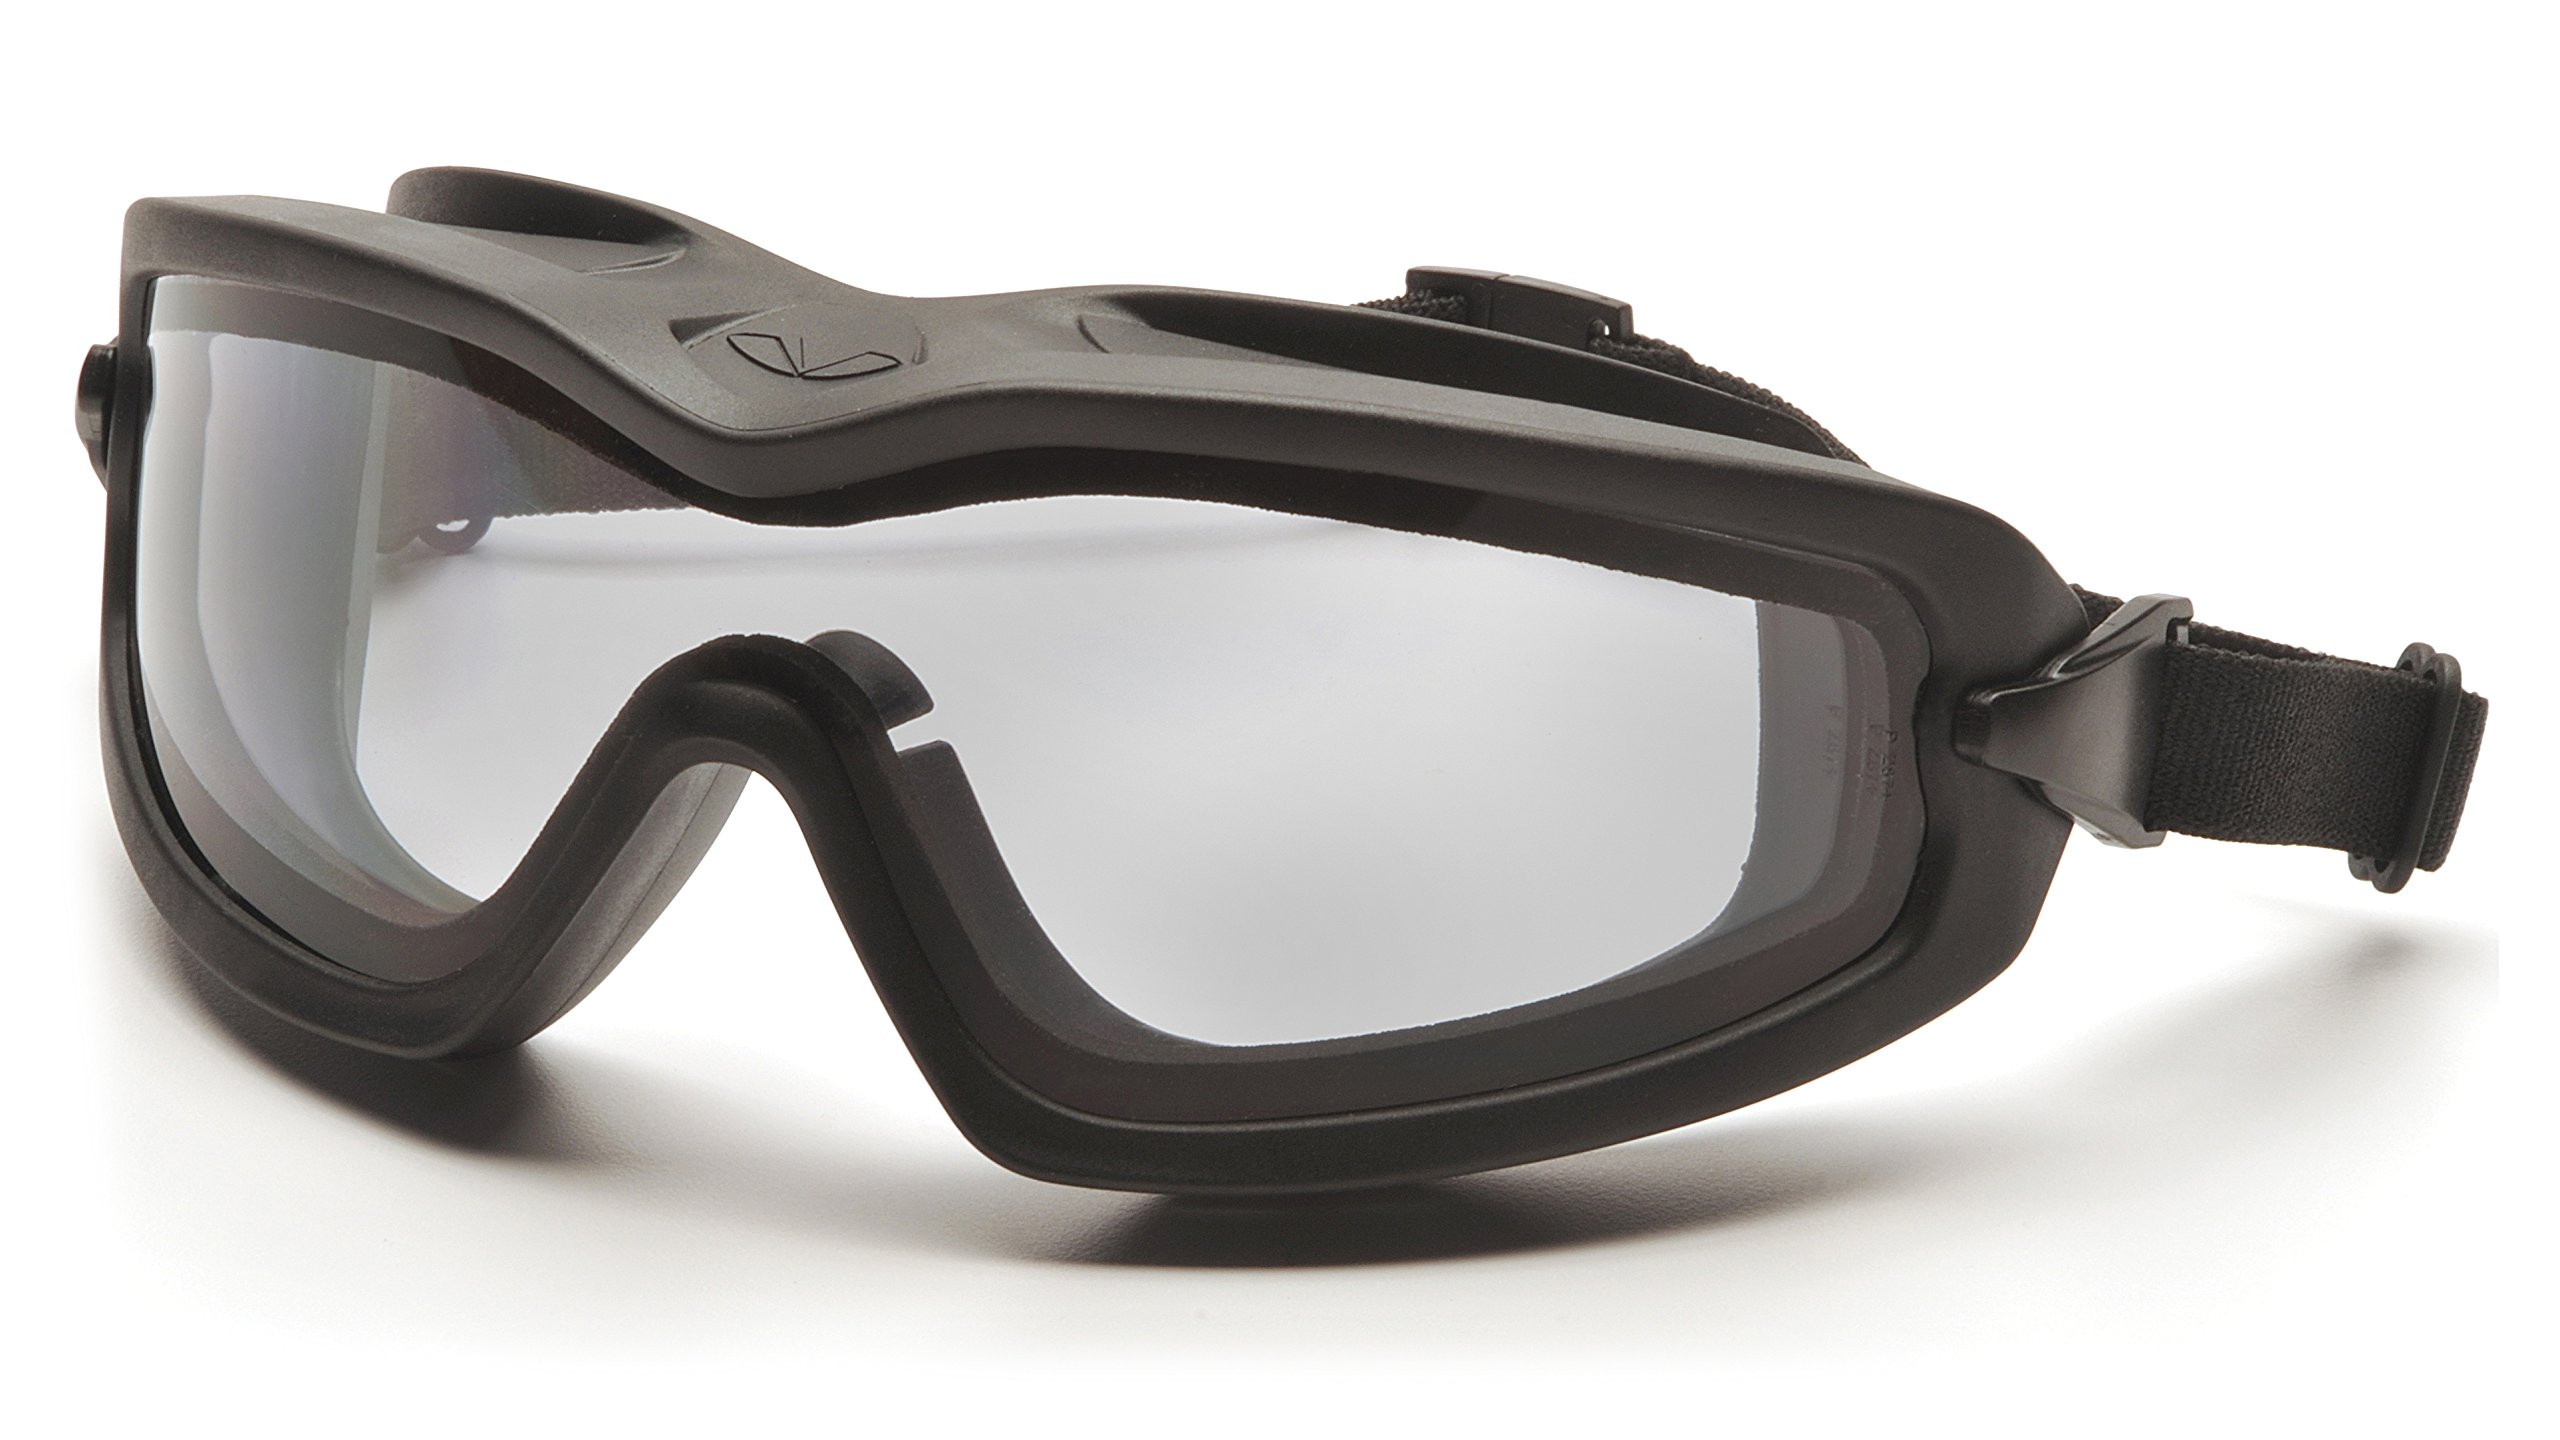 Pyramex V2G Safety Goggles with Adjustable Strap, Black Frame, Dual Clear H2X Anti-Fog Lens